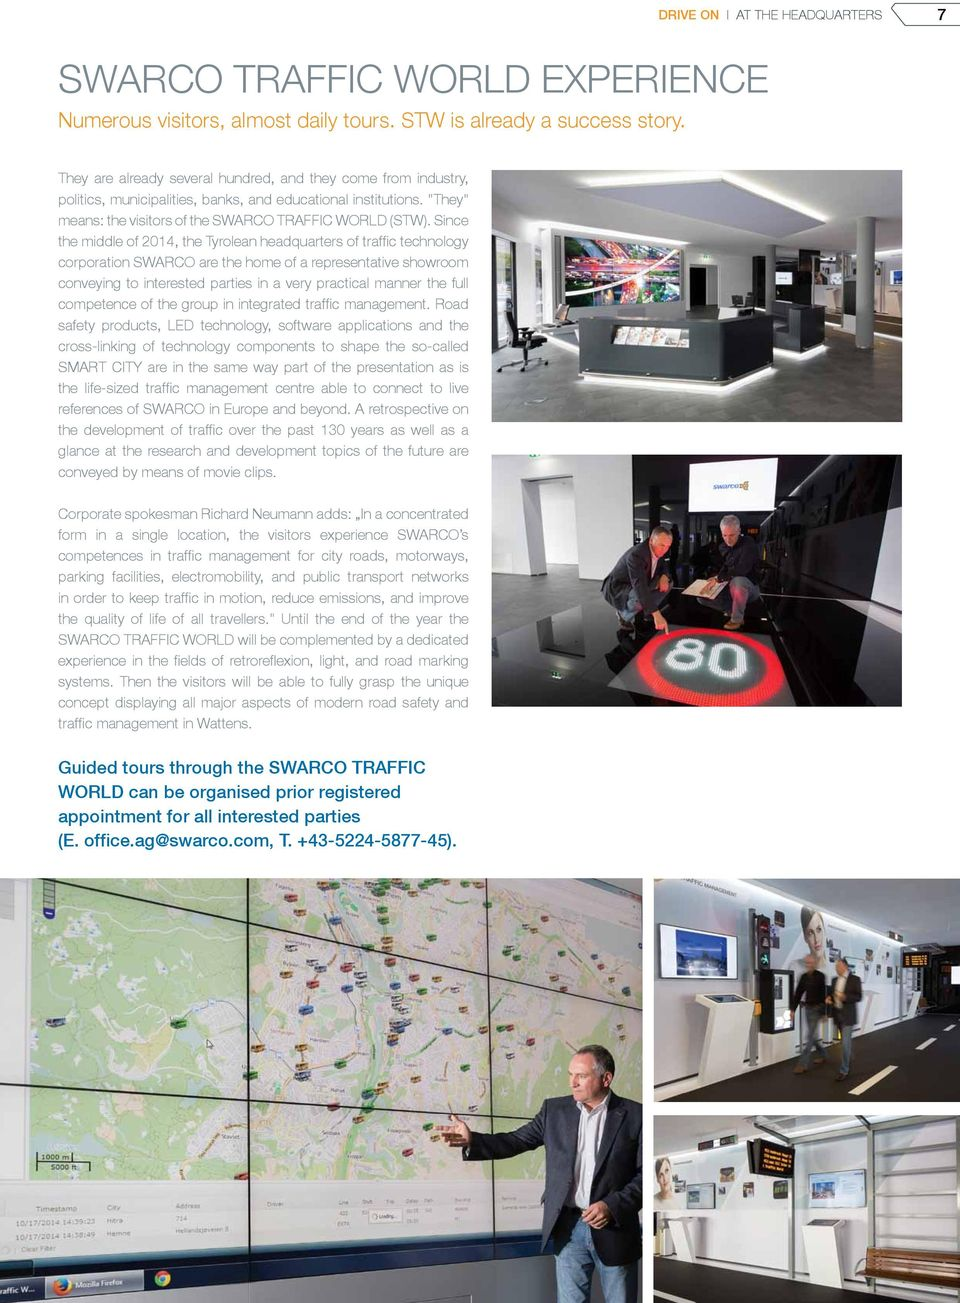 Since the middle of 2014, the Tyrolean headquarters of traffic technology corporation SWARCO are the home of a representative showroom conveying to interested parties in a very practical manner the